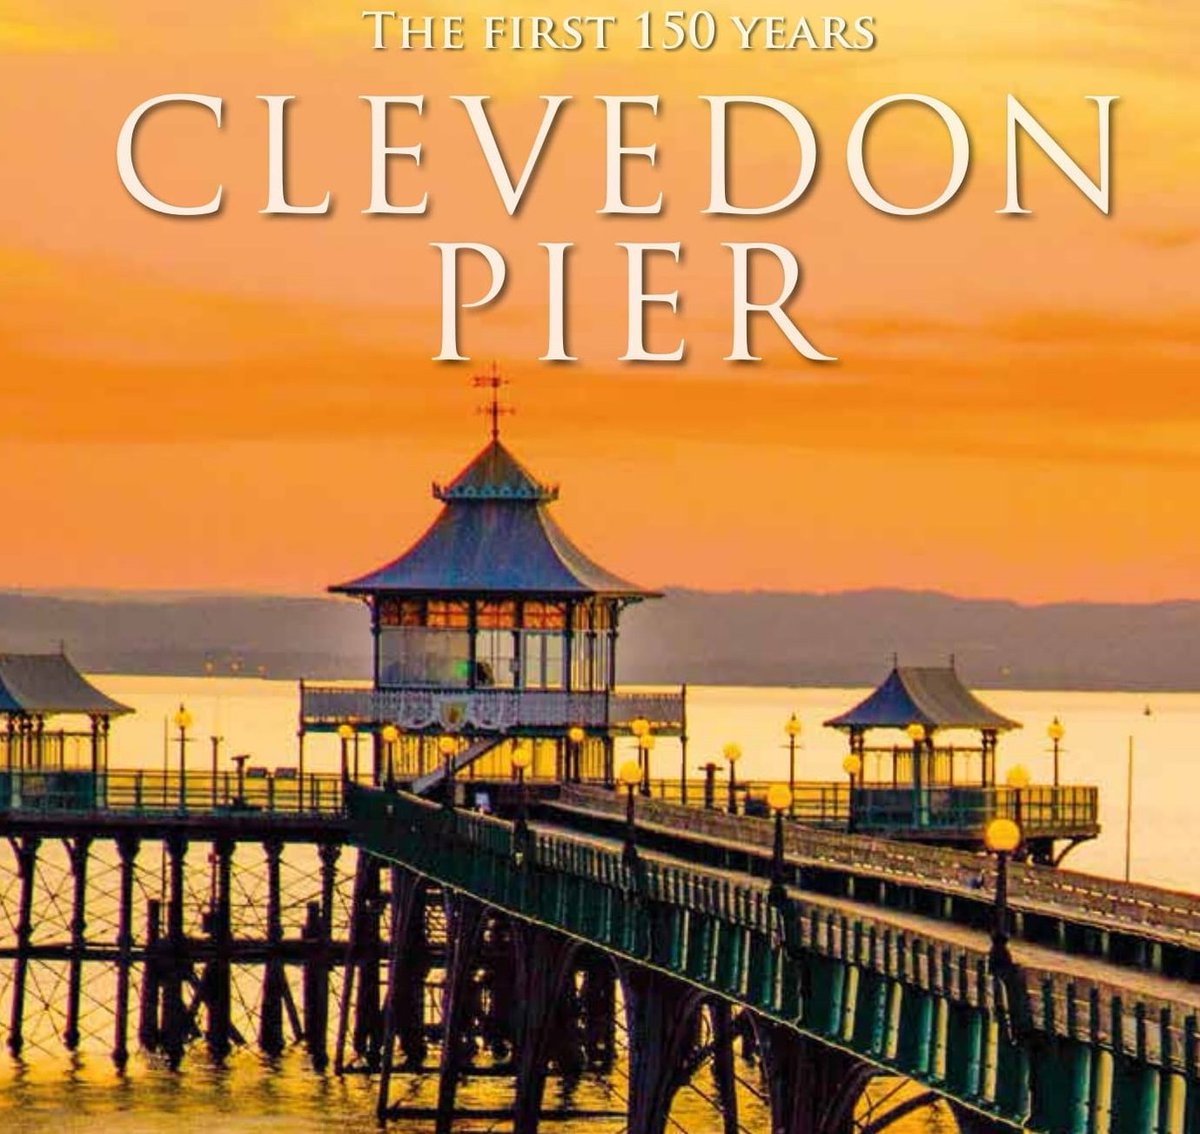 Our brand new souvenir brochure &#39;The First 150 Years of Clevedon Pier&#39; is now available and we are thrilled with the result  #ClevedonPier #Clevedon #Heritage #History #ClevedonPier150<br>http://pic.twitter.com/WTFA0TCaG9